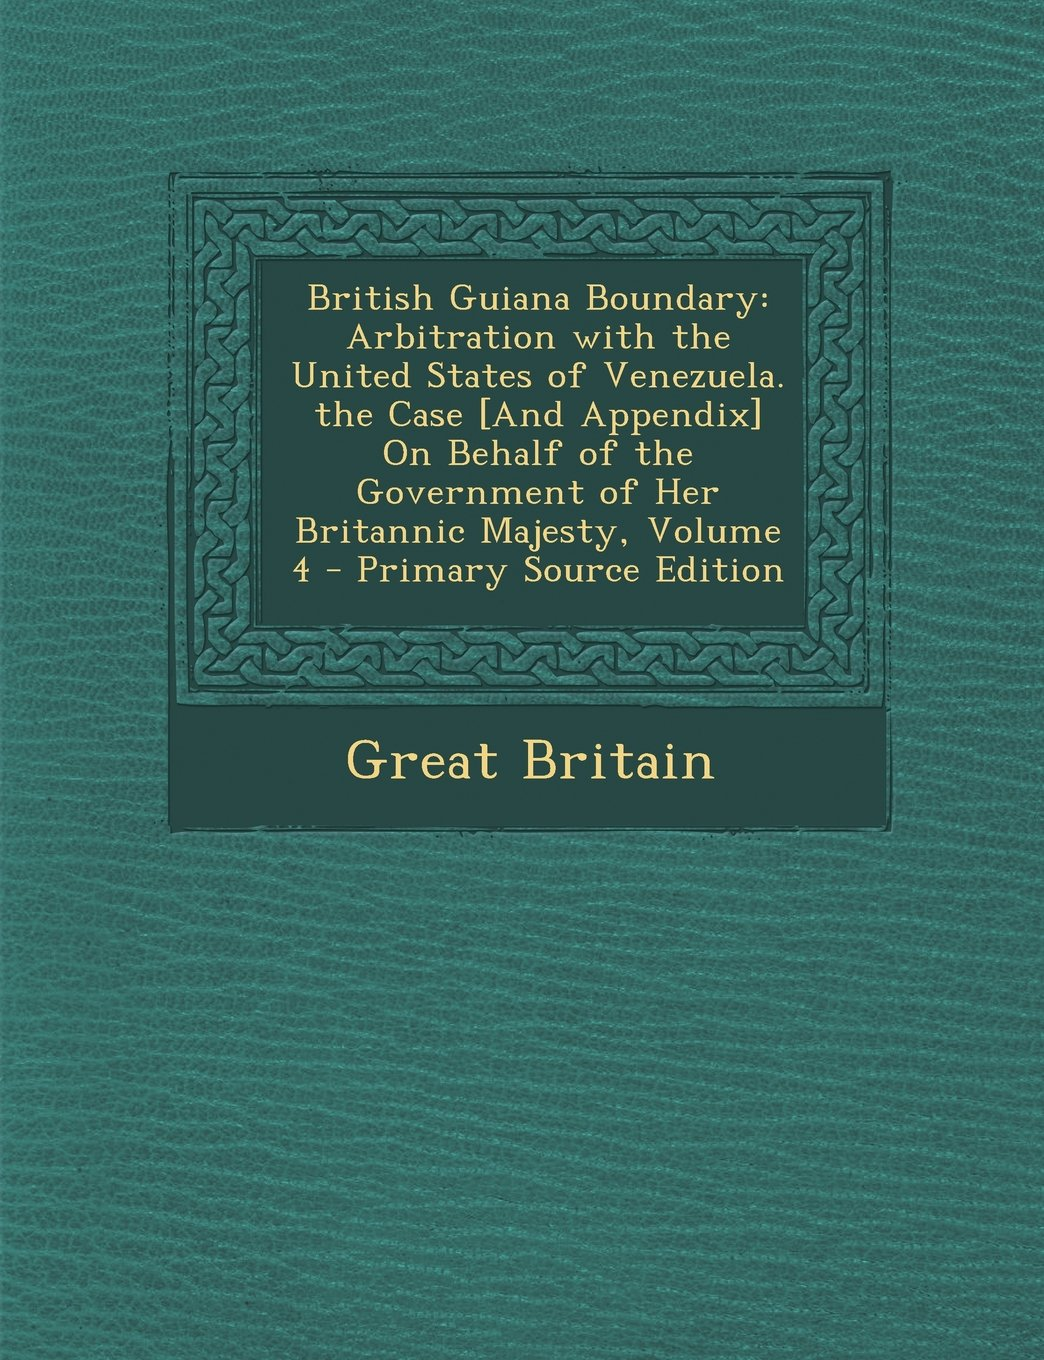 British Guiana Boundary: Arbitration with the United States of Venezuela. the Case [And Appendix] On Behalf of the Government of Her Britannic Majesty, Volume 4 - Primary Source Edition ebook